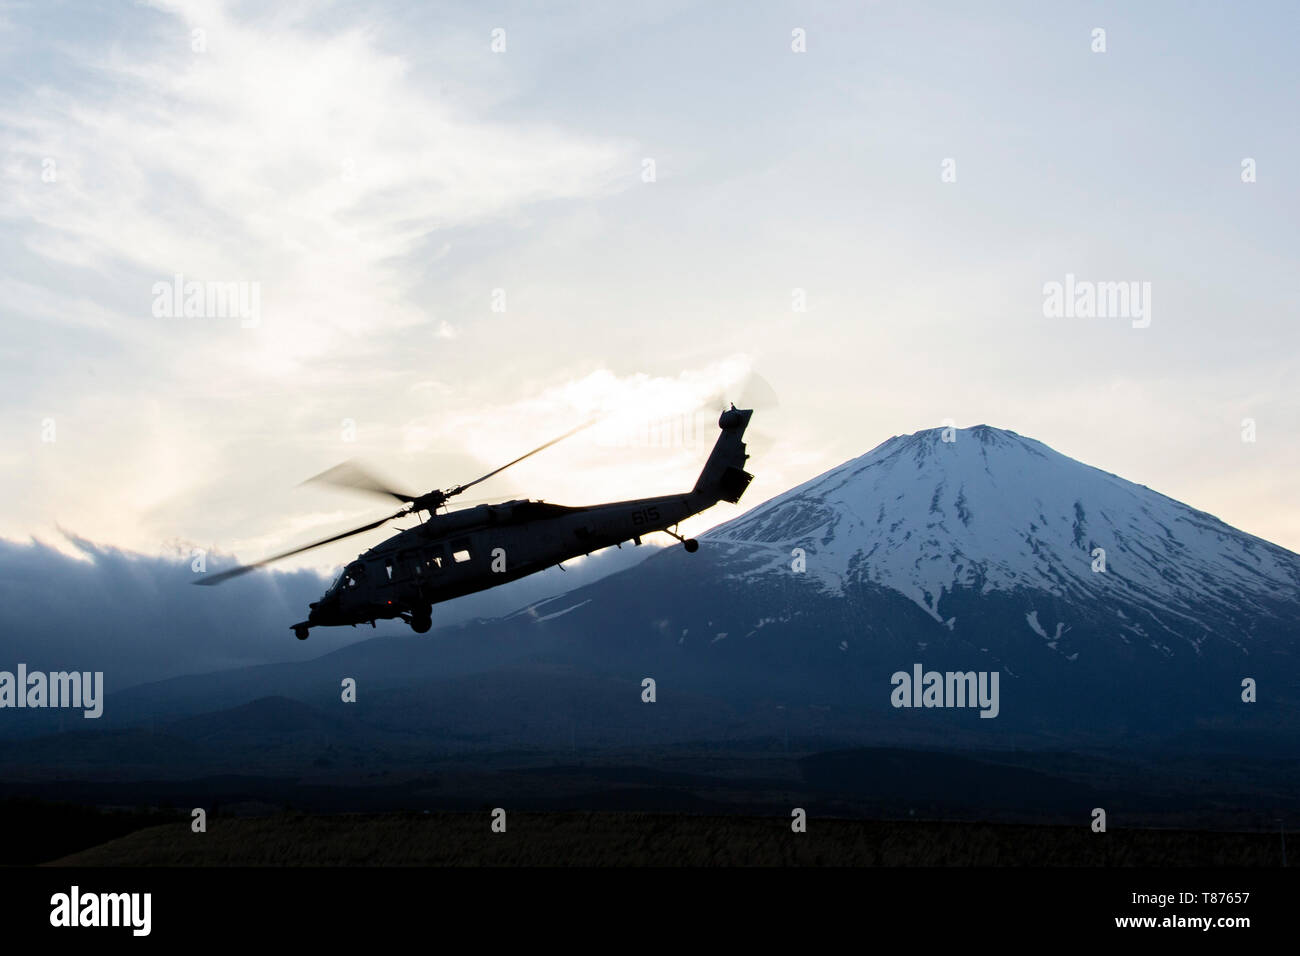 A SH-60 Seahawk Helicopter, with Helicopter Sea Combat Squadron 12, working in coordination with 3rd Battalion, 6th Marine Regiment, currently attached to 3rd Marine Division, with 4th Marine Regiment on the Unit Deployment Program, takes off during a casualty evacuation drill as a part of Exercise Fuji Viper at Combined Arms Training Center, Camp Fuji, May 8, 2019. Naval Aviators worked in coordination with Marine Combined Anti-Armor Teams to evacuate simulated casualties. (U.S. Marine Corps photo by Lance Cpl. Joshua Sechser) - Stock Image